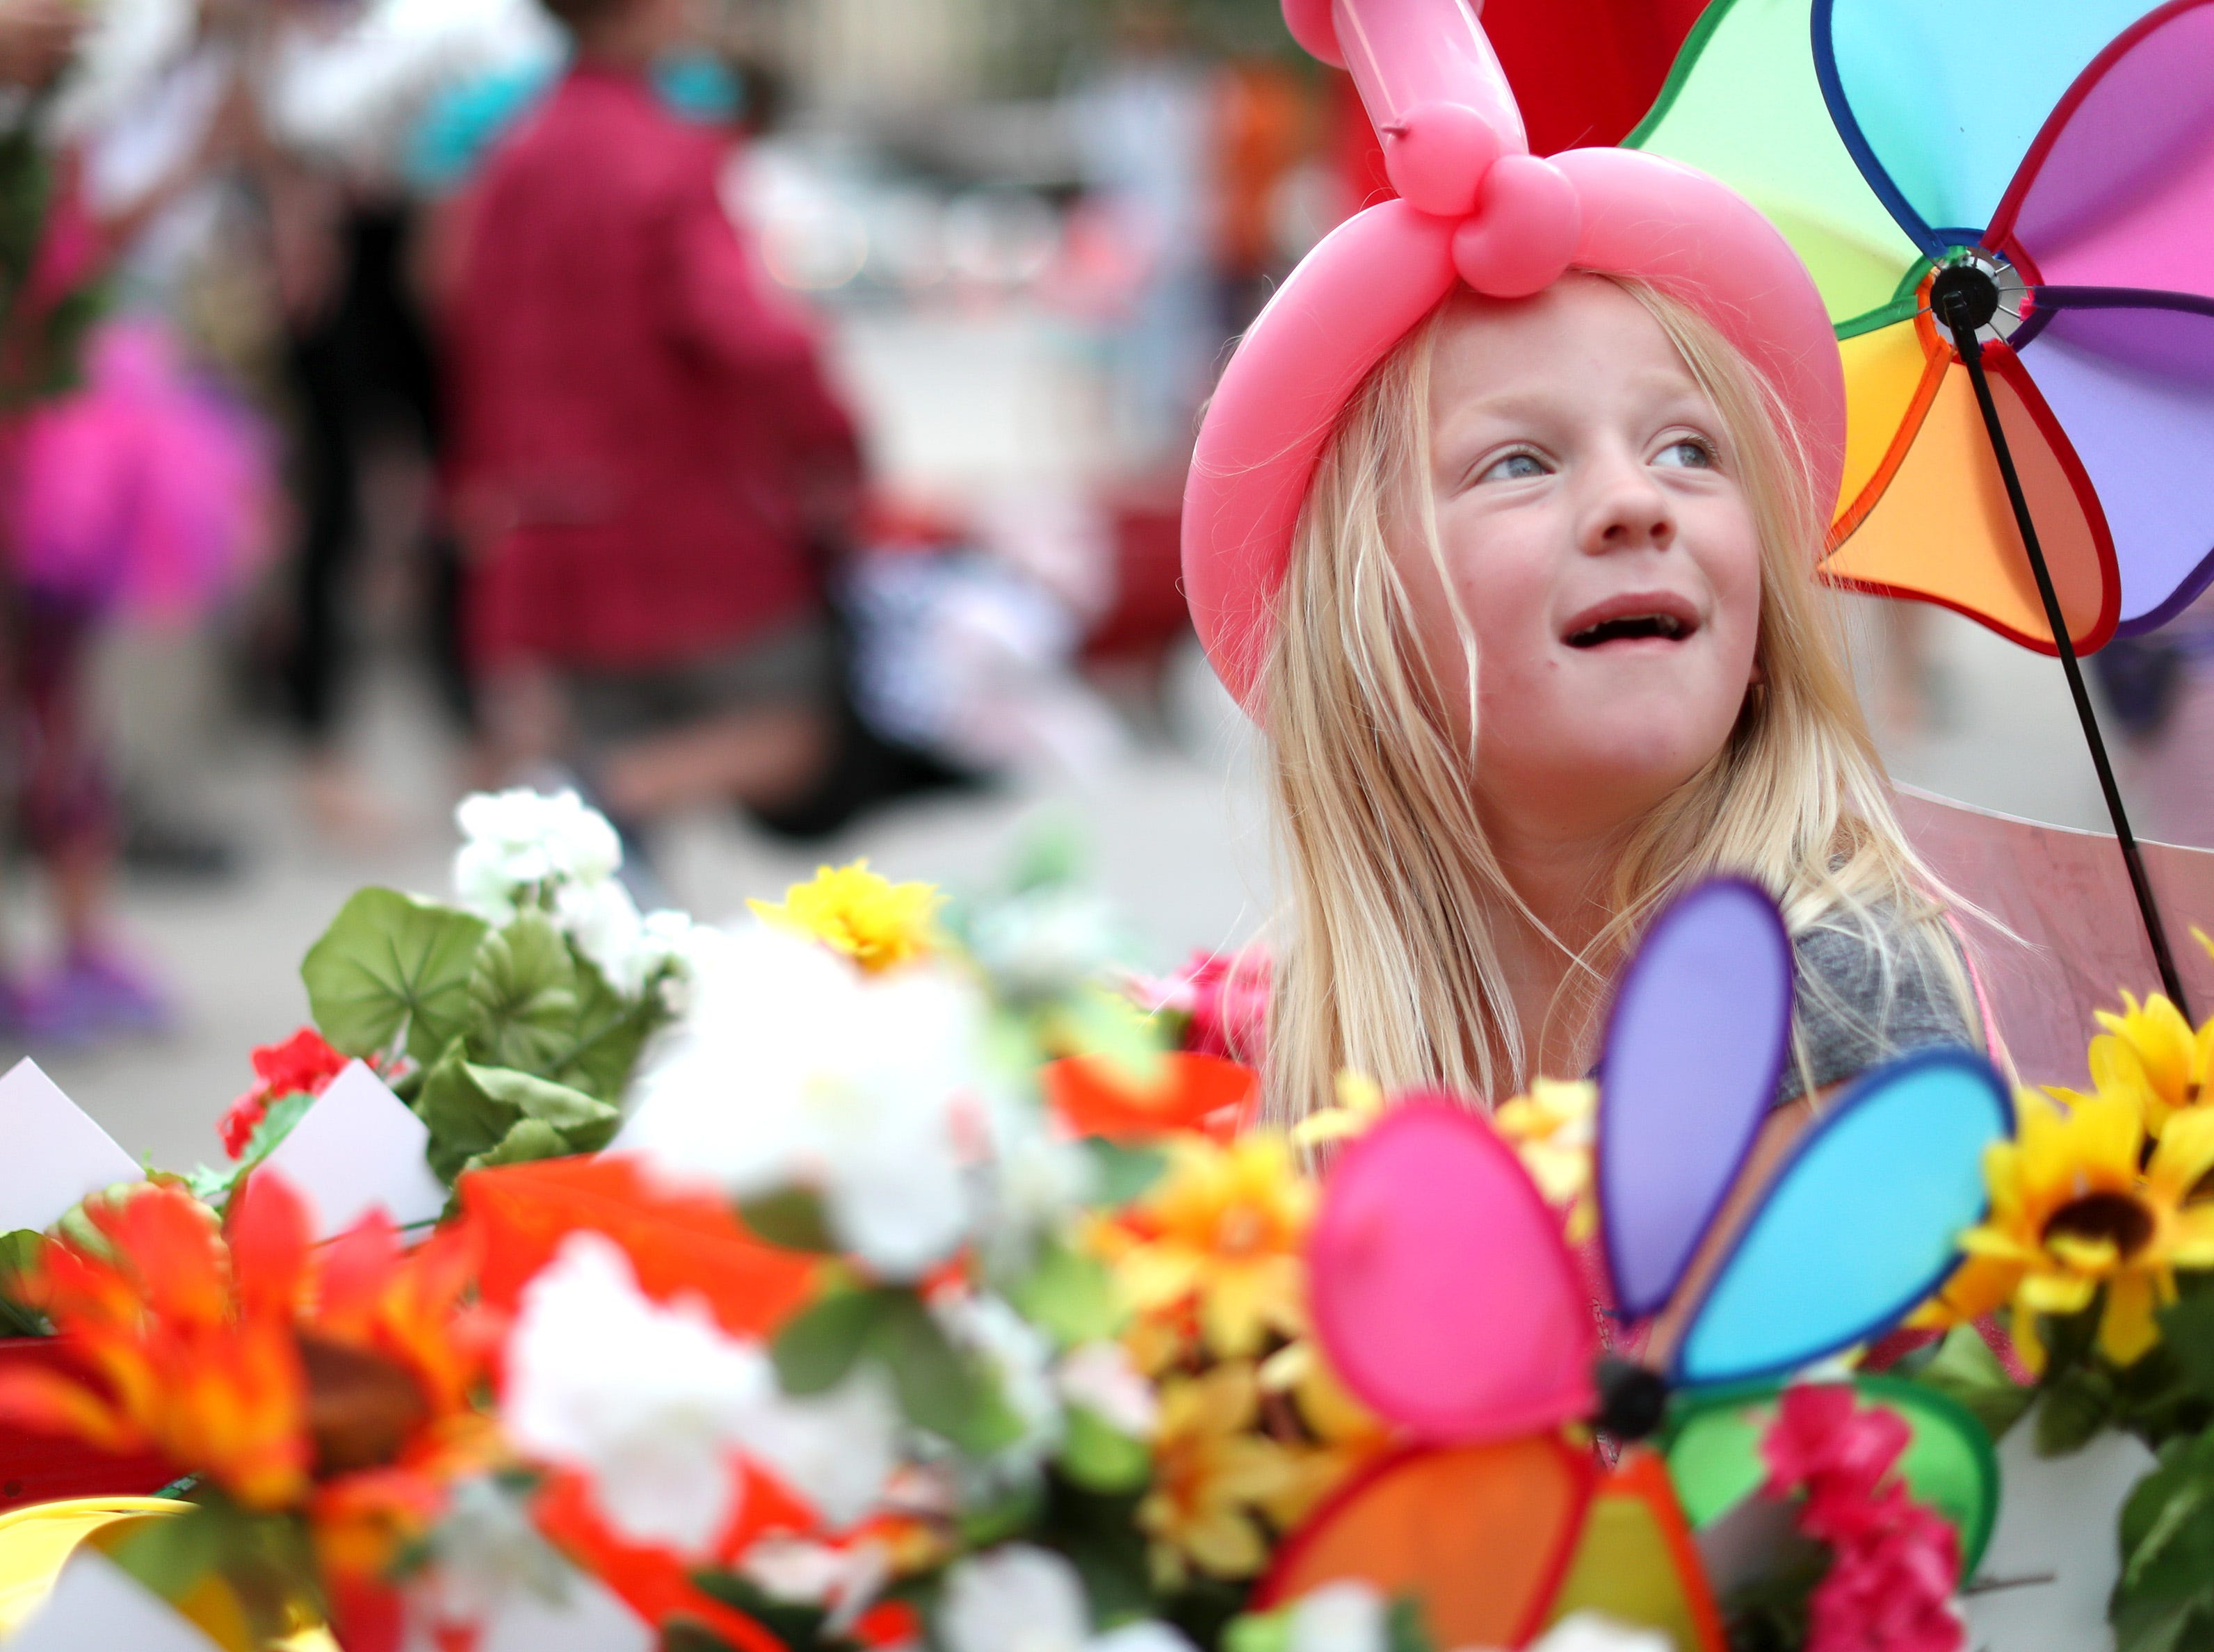 Aubrie Geurden, 5, sits in a wagon filled with flowers during the 10th annual ChildrenÕs Parade Wednesday, July 25, 2018, in Appleton, Wis. Danny Damiani/USA TODAY NETWORK-Wisconsin